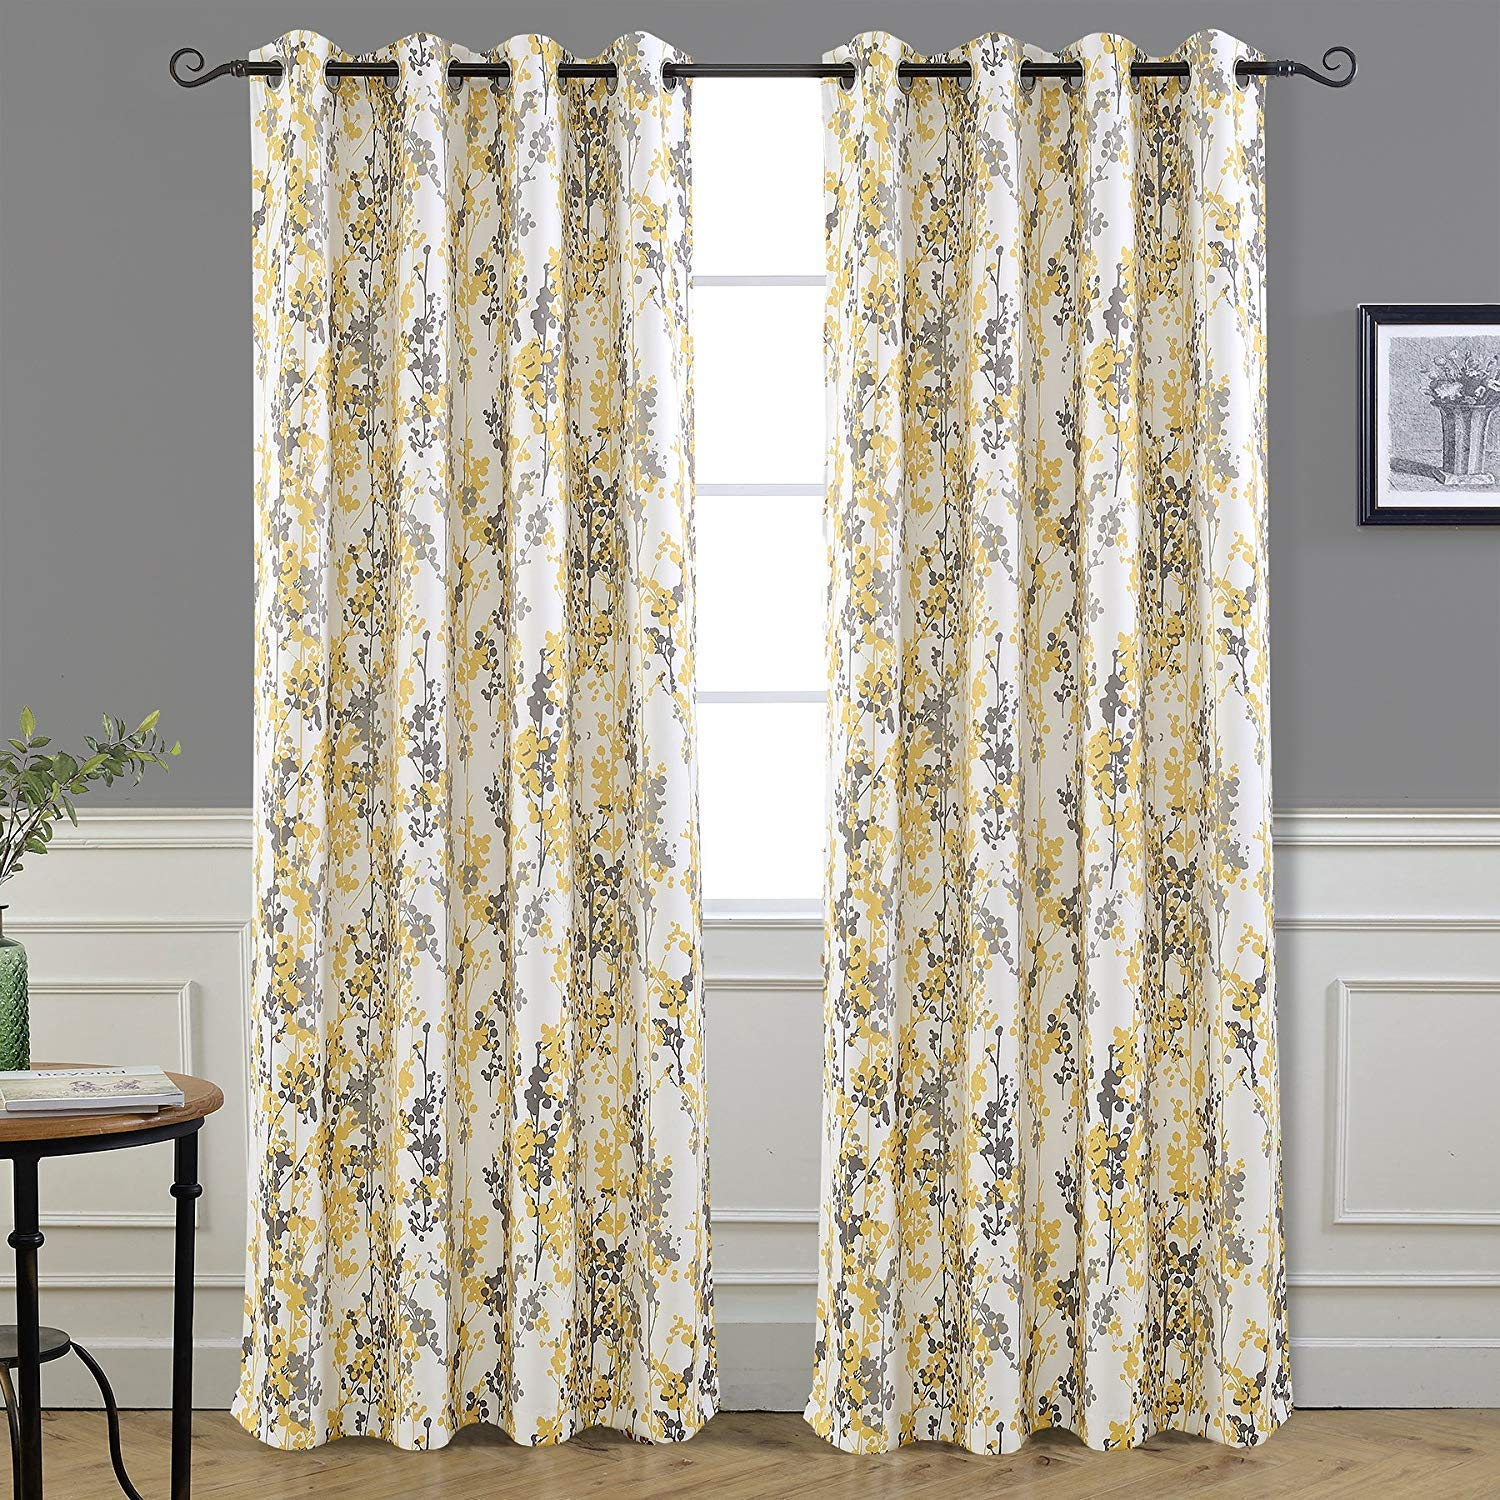 """DriftAway Leah Abstract Floral Blossom Ink Painting Room Darkening/Thermal Insulated Grommet Unlined Window Curtains, Set of Two Panels, Each Size 52""""x84"""" (Yellow/Silver/Gray)"""